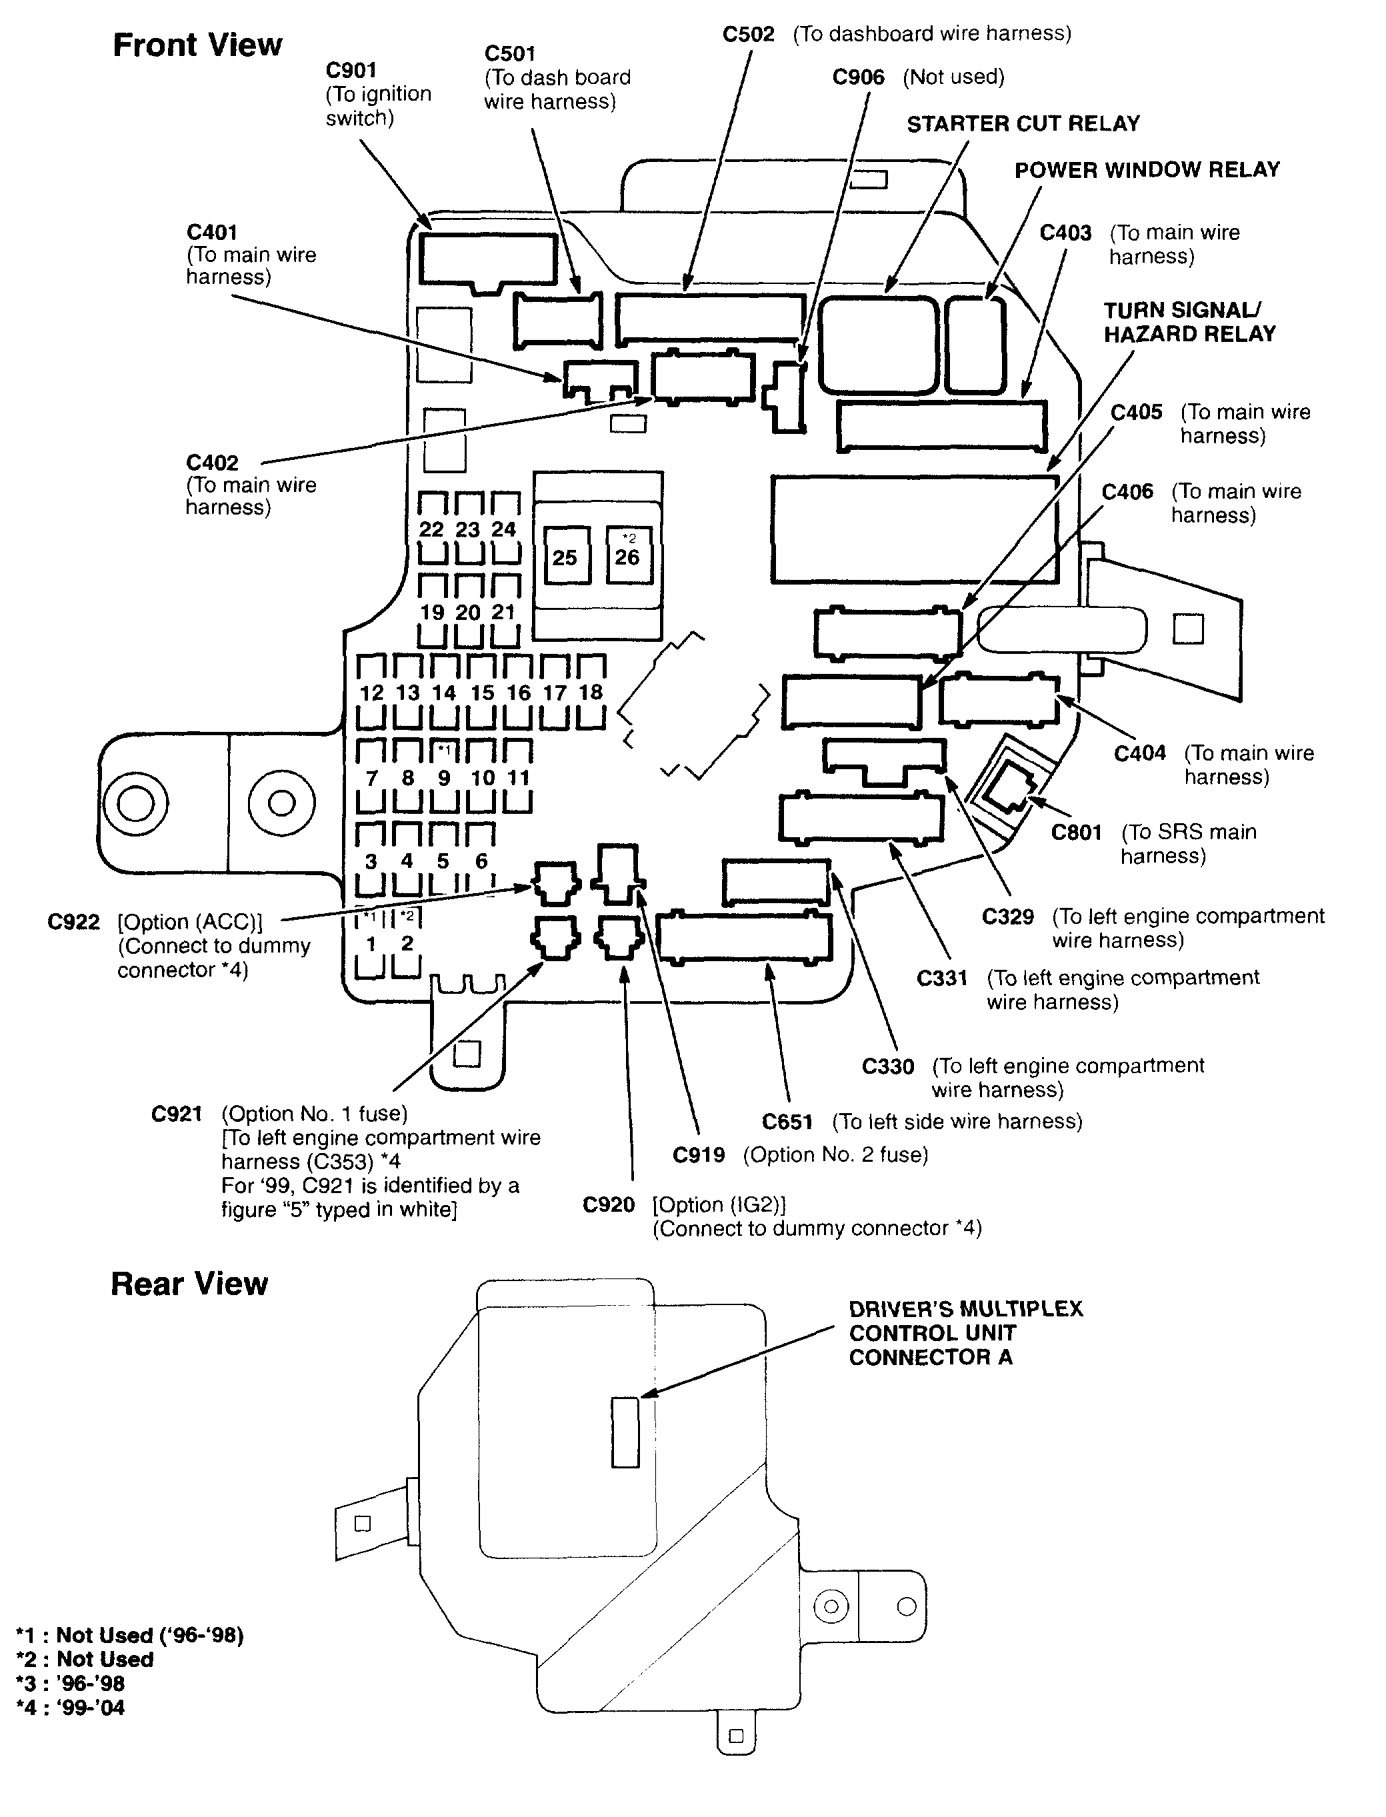 2004 Acura Rl Fuse Box Diagram Wiring Schematics 2005 Mdx Location 2000 Diagrams Panel Carknowledge 2010